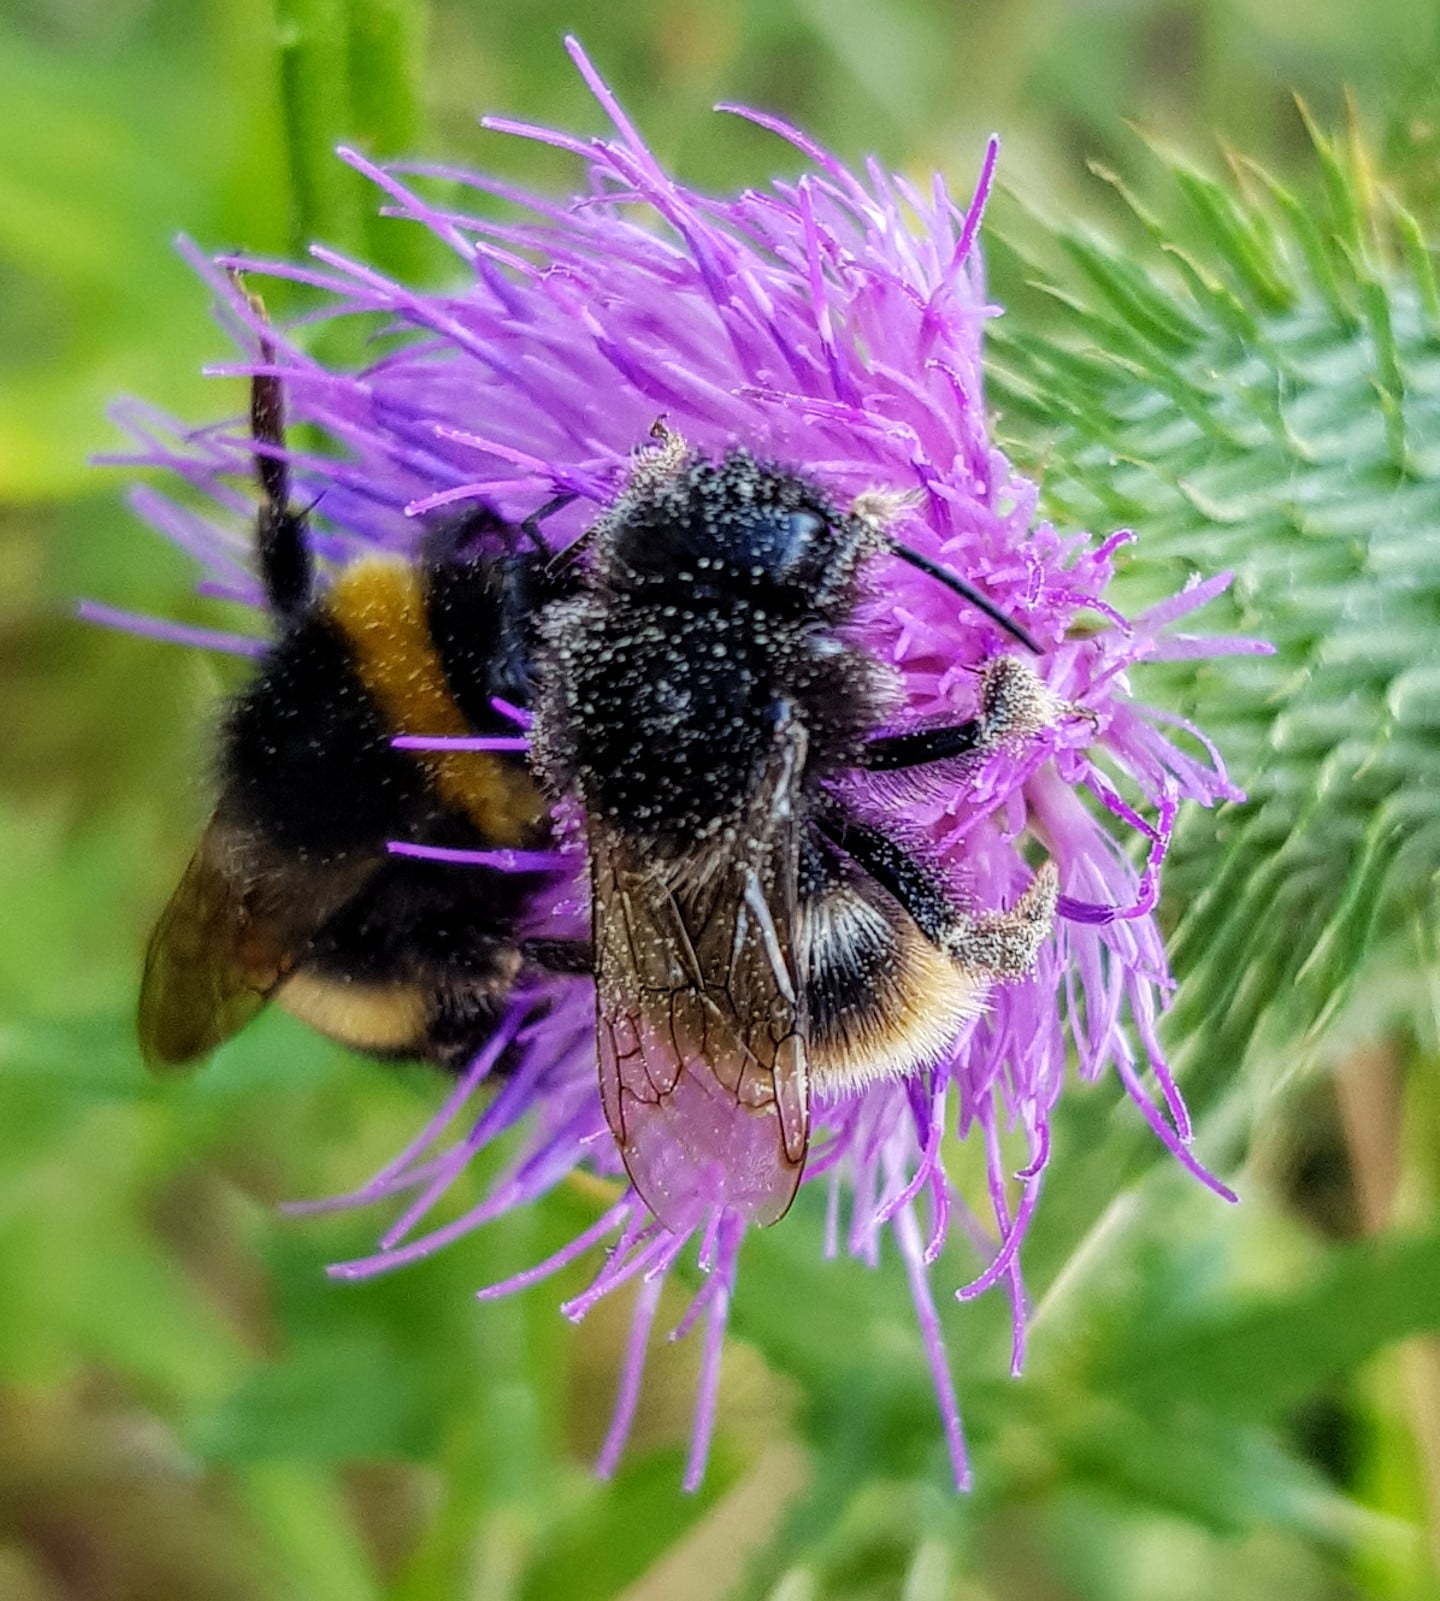 Two bees on thistle